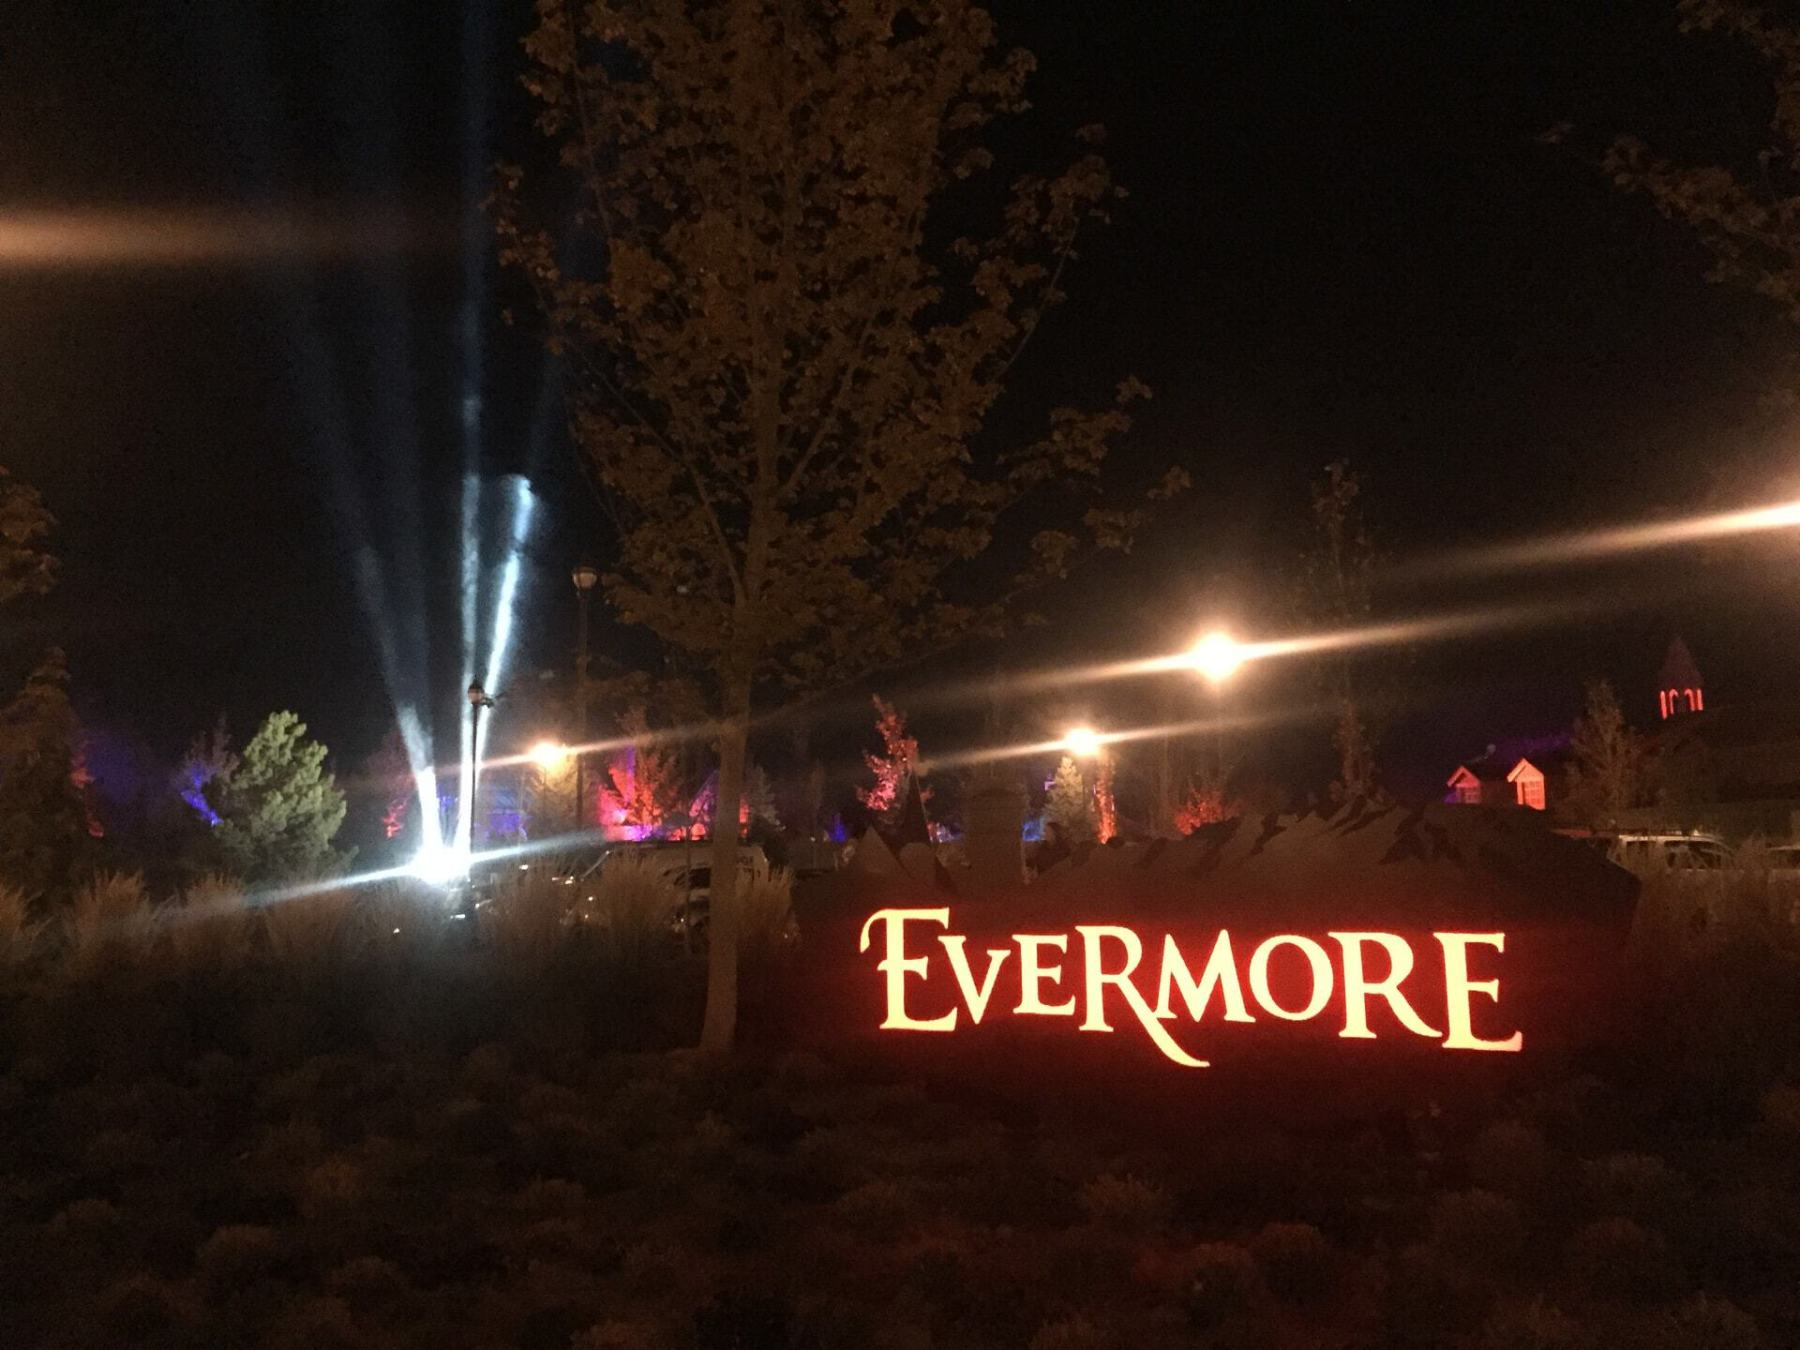 Evermore Park in Pleasant Grove, Utah